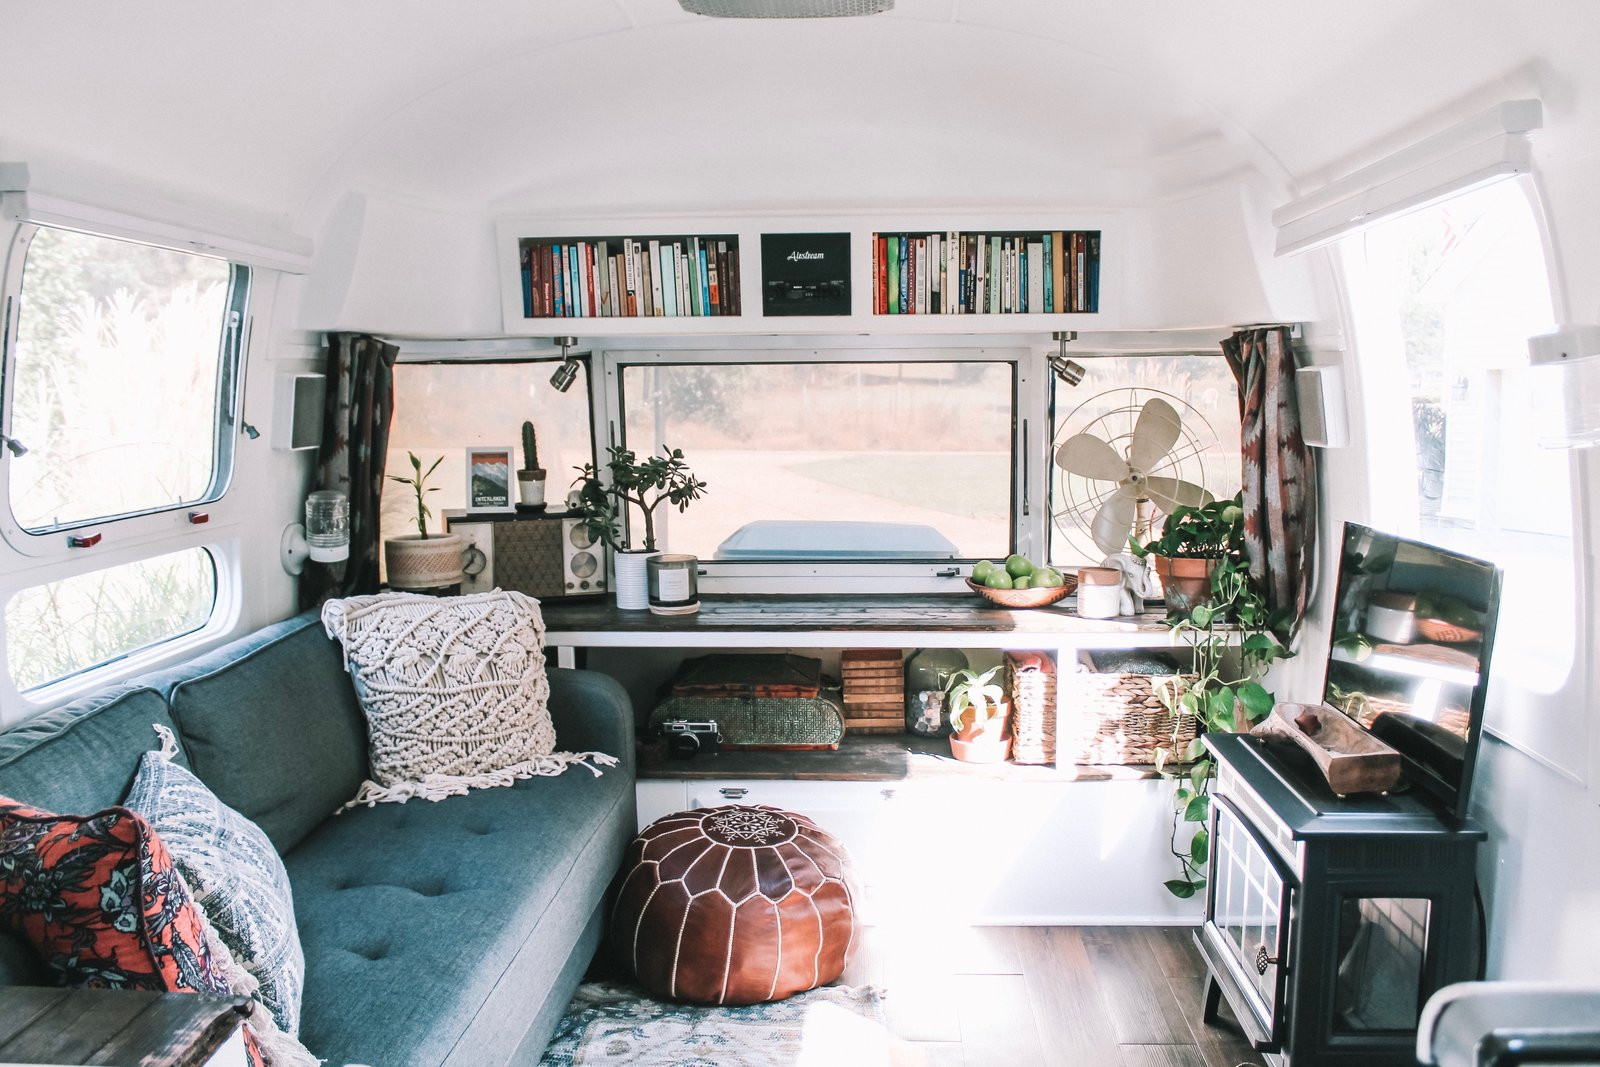 Interesting Airstream Interior Design before & after Augustine the Airstream Gets A Chic Diy